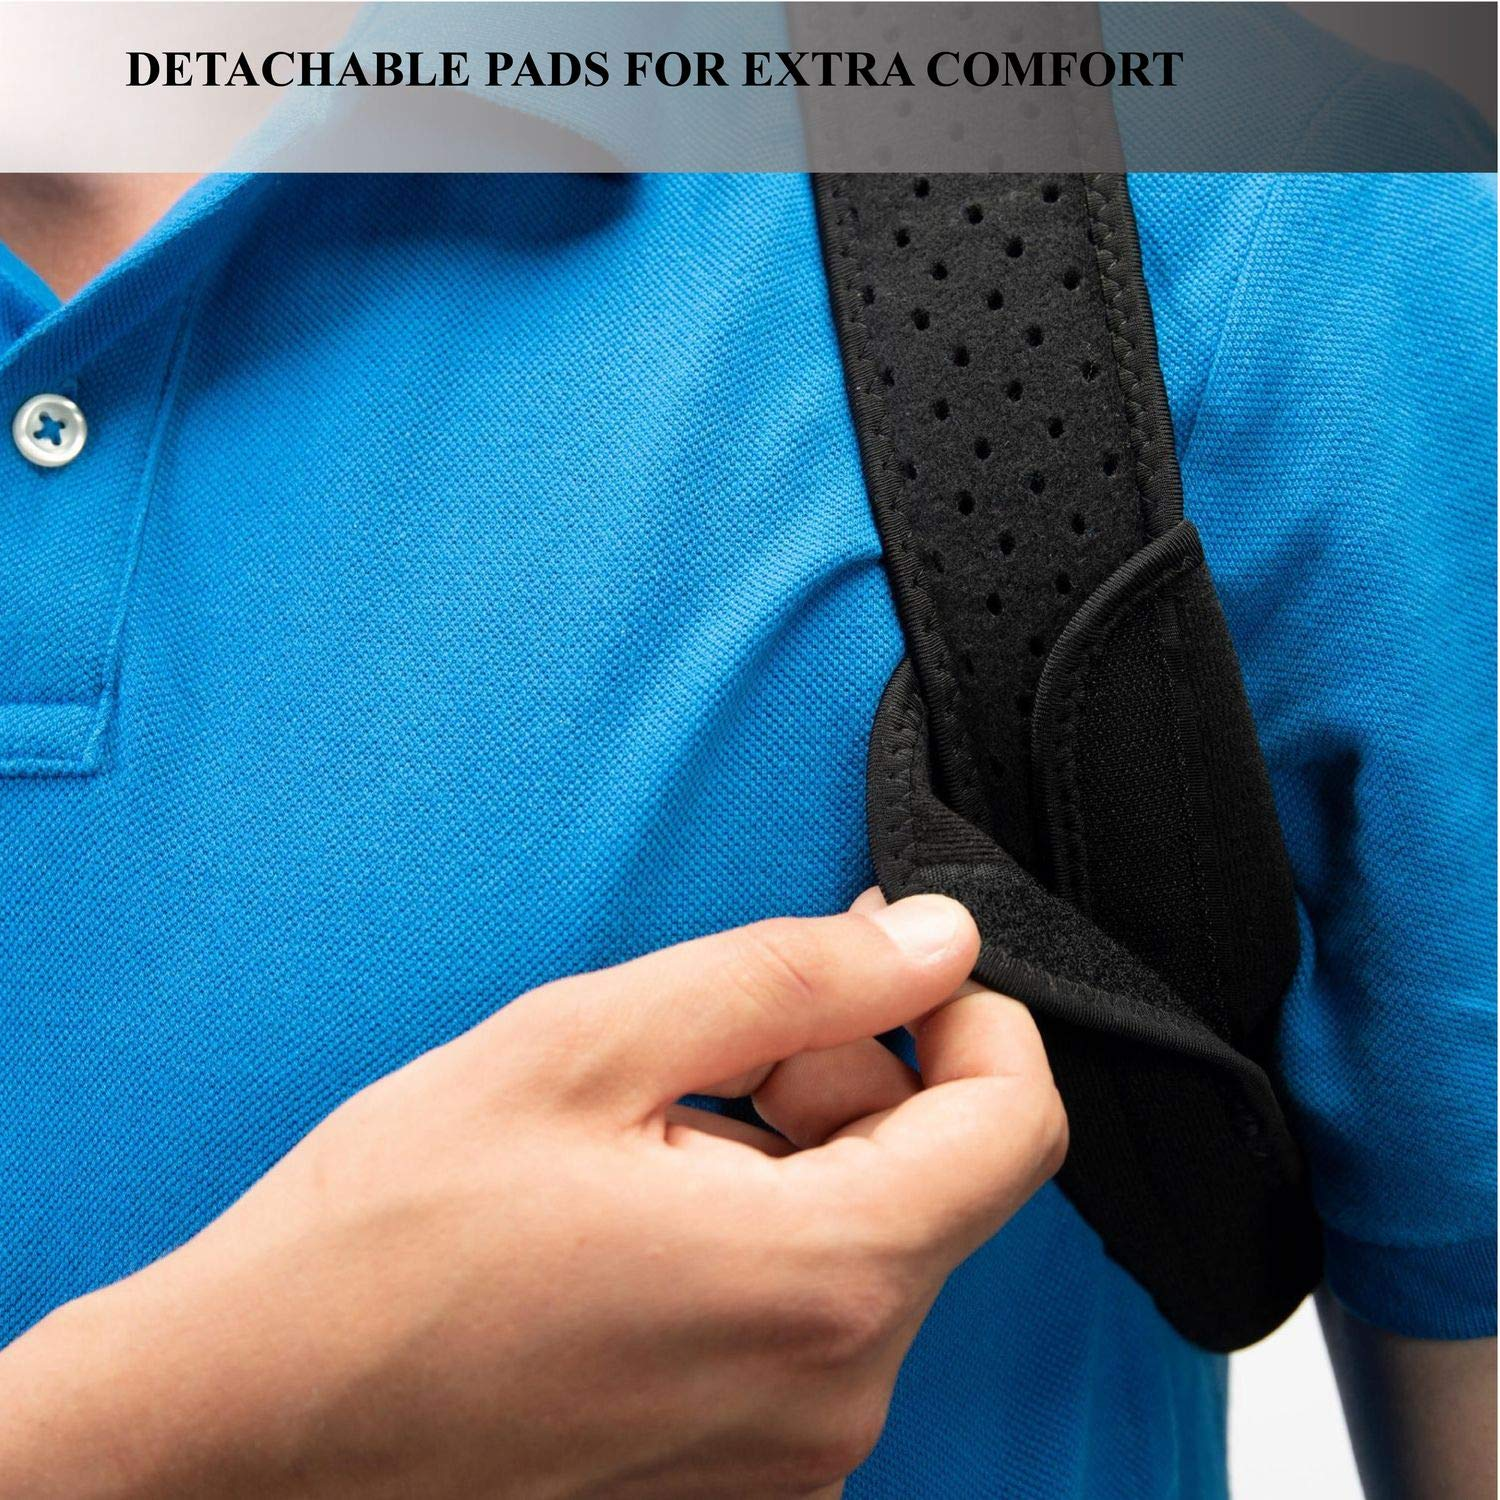 Back Posture Corrector for Women and Men-Breathable and Comfortable Clavicle Brace for Improving Posture-Adjustable and Discreet Clavicle Support Brace for Slouching & Hunching by Roxattract (Image #4)